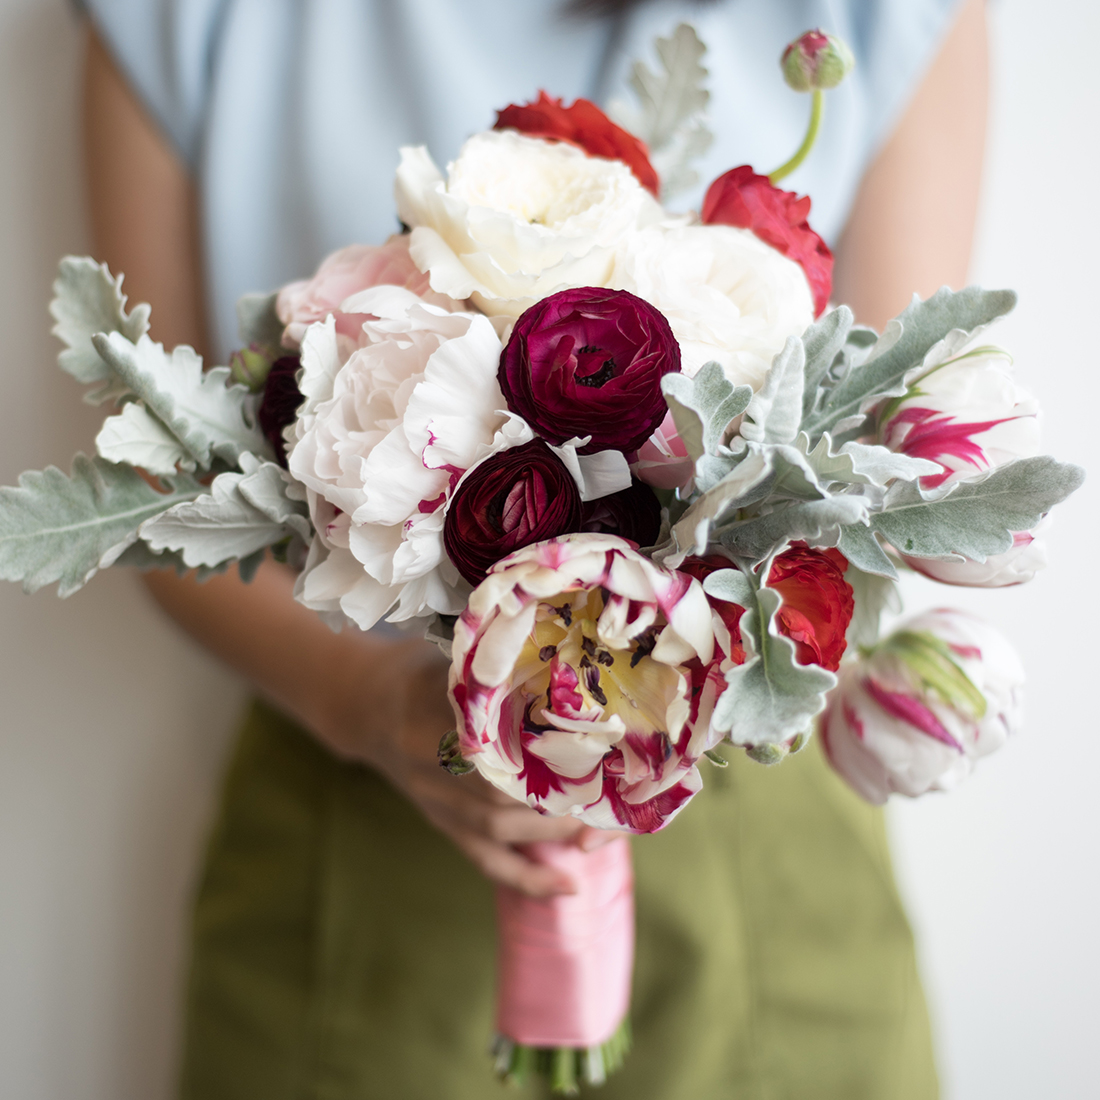 Diy Wedding Decor Five Tips For Arranging Your Own Bouquets And